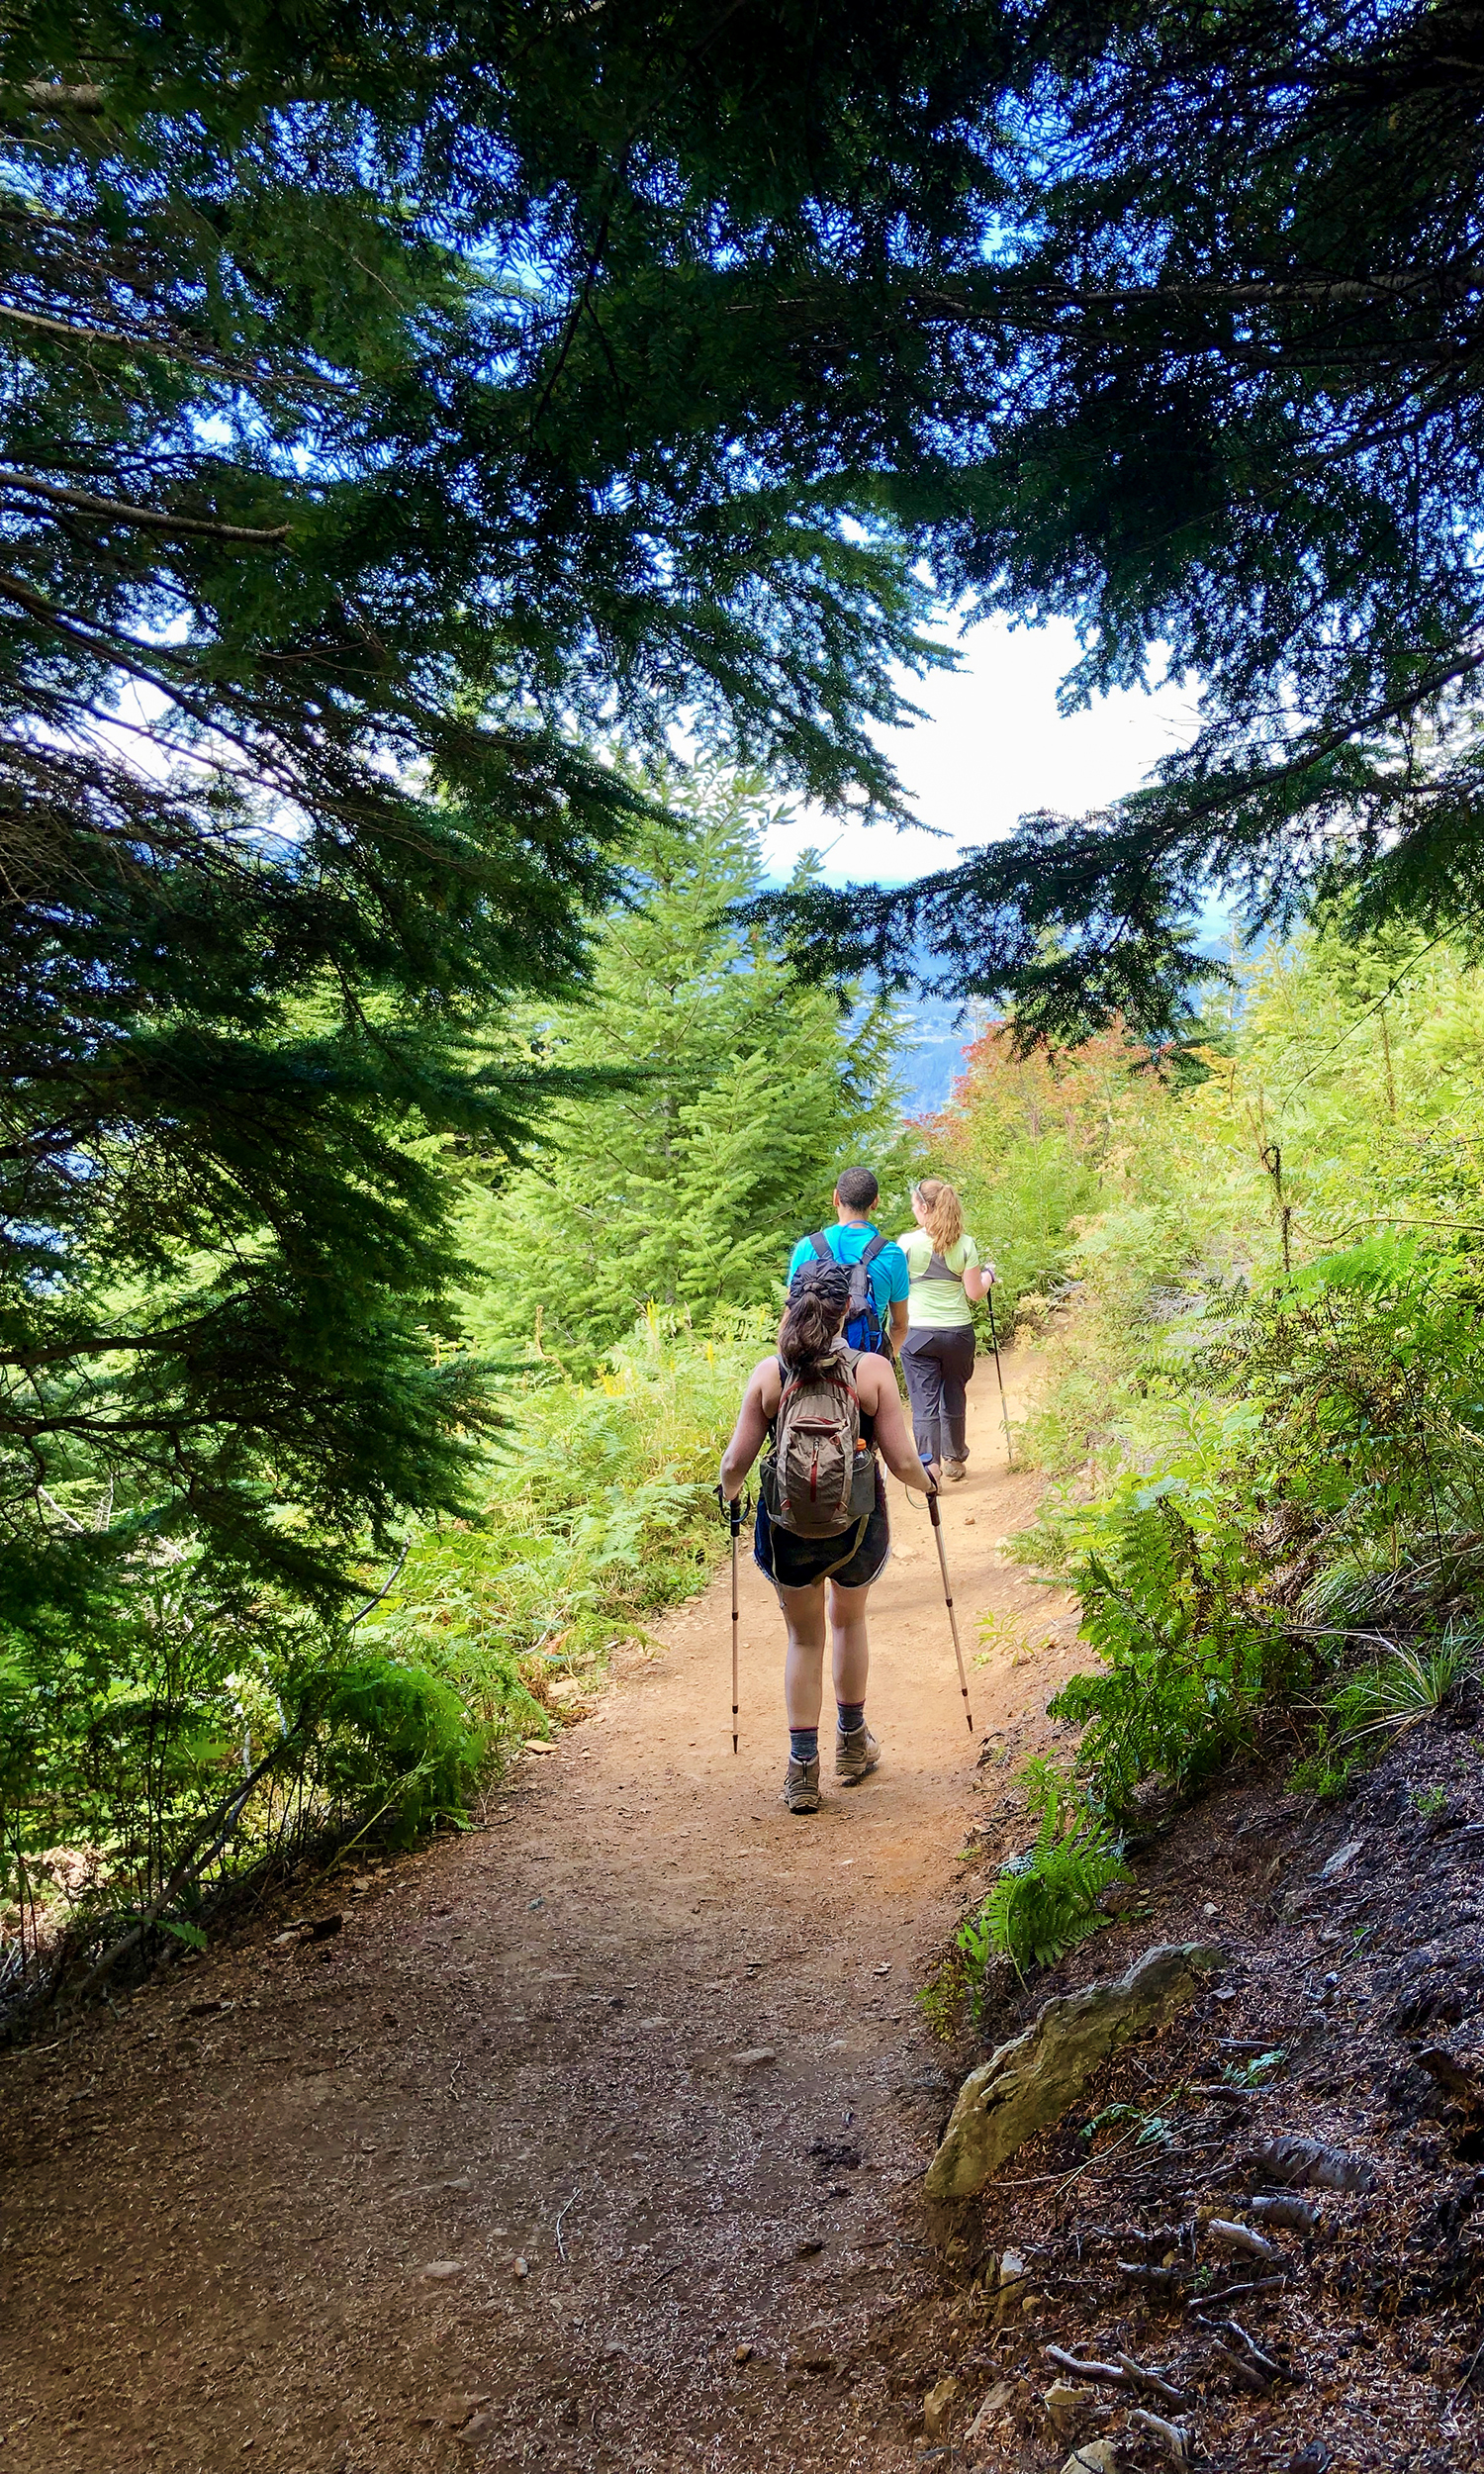 <p>At last, the first flat clearing in miles, and an opportunity to take in the first of many scenic views. This spot is where the Old Trail converges with the New Trail. (Image:{&nbsp;}Rachael A. Jones / Seattle Refined){&nbsp;}</p>